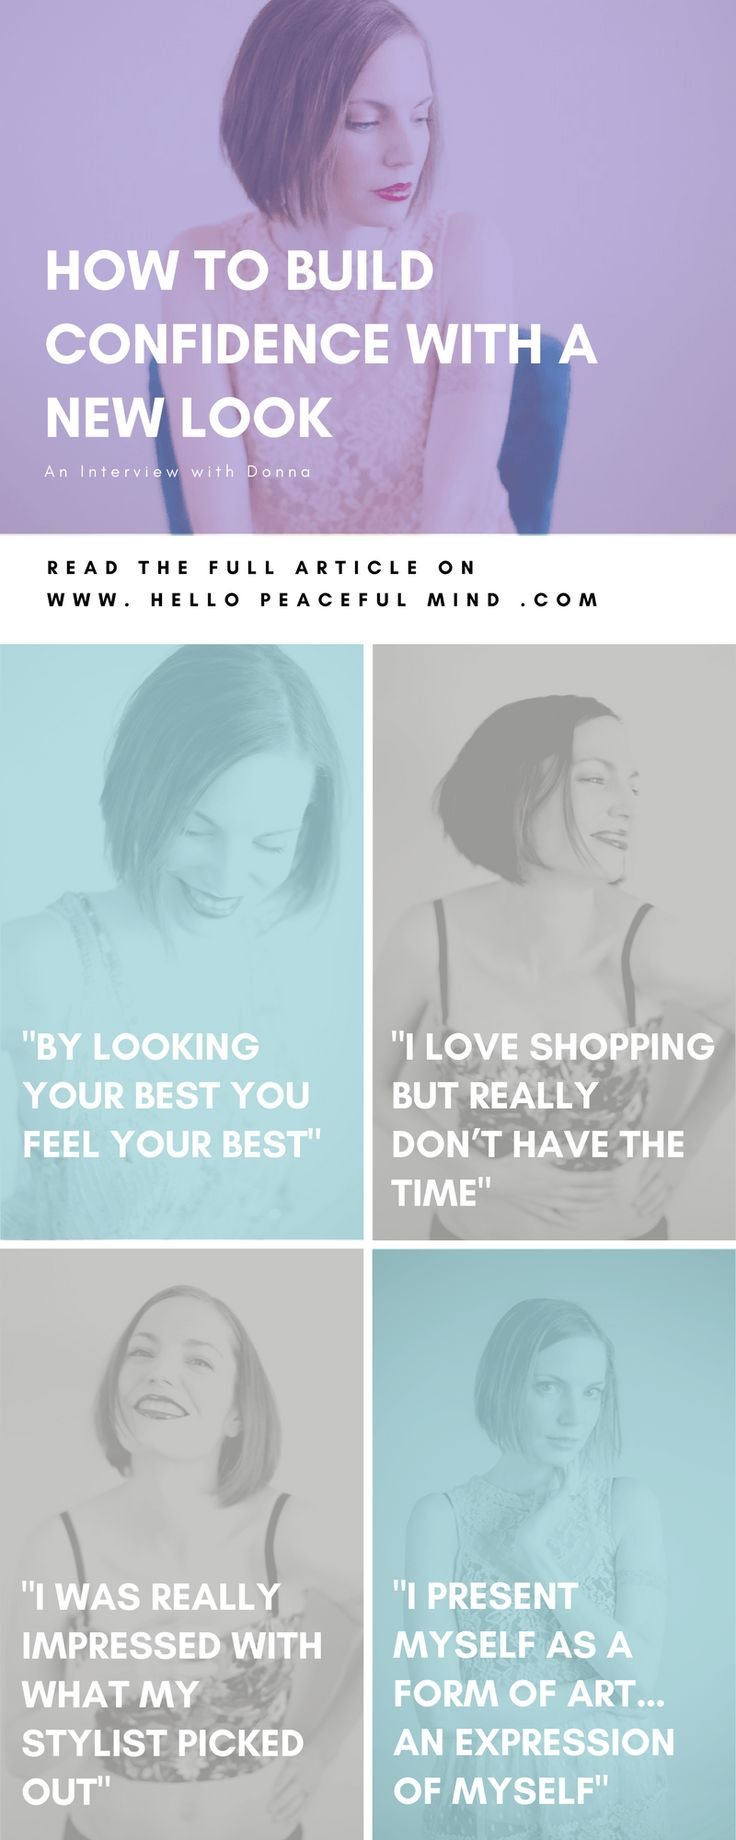 Discover how my very good friend Donna is building confidence by getting a personal stylist in this exclusive interview. She shares her experience and what to expect. Go to www.HelloPeacefulMind.com to read the full interview!